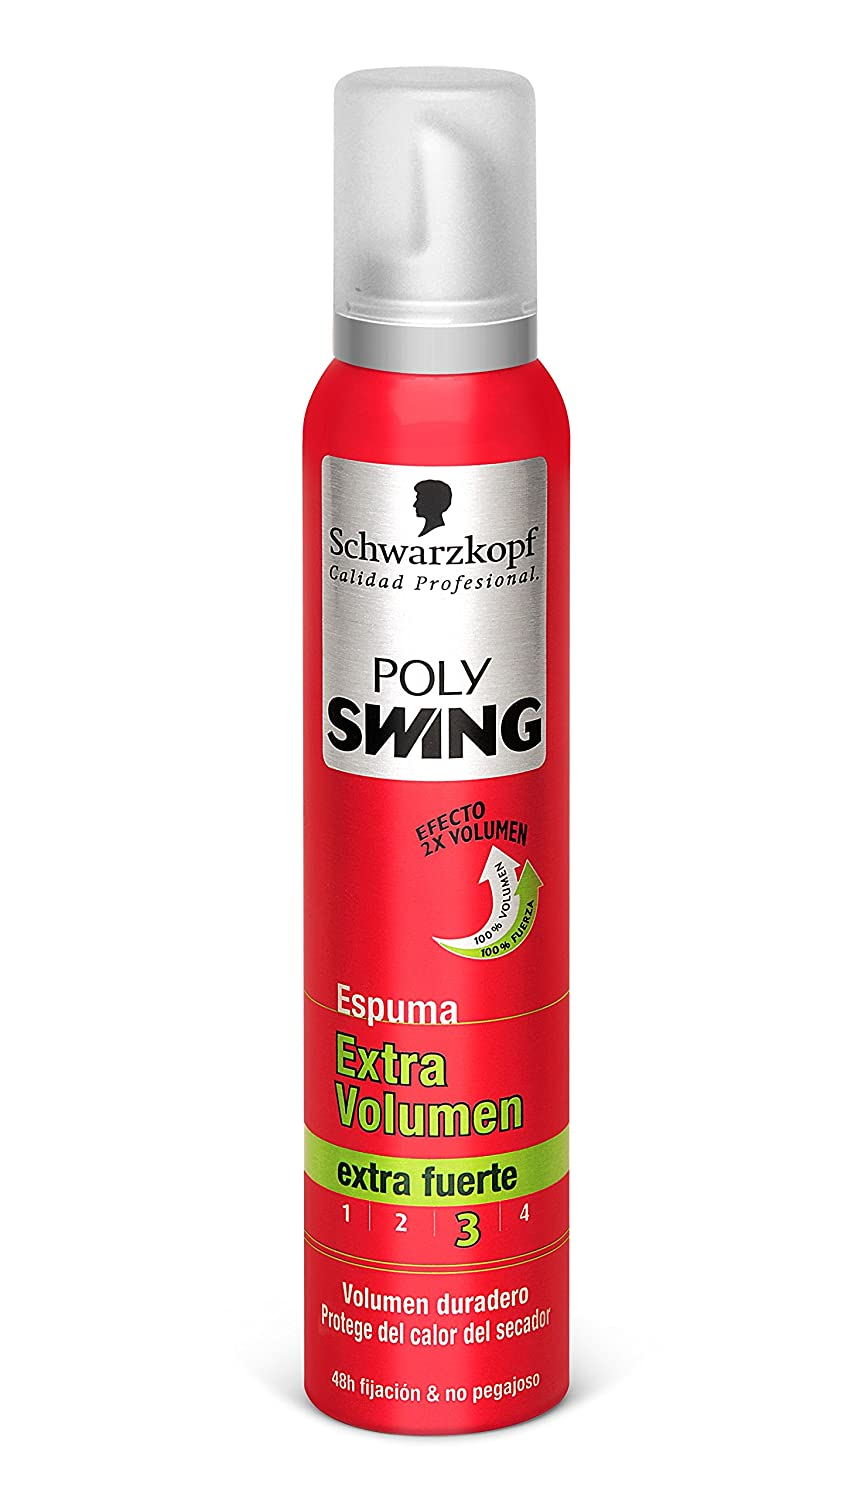 Poly Swing Espuma Extra Volumen - 200 ml Henkel 8410020646096